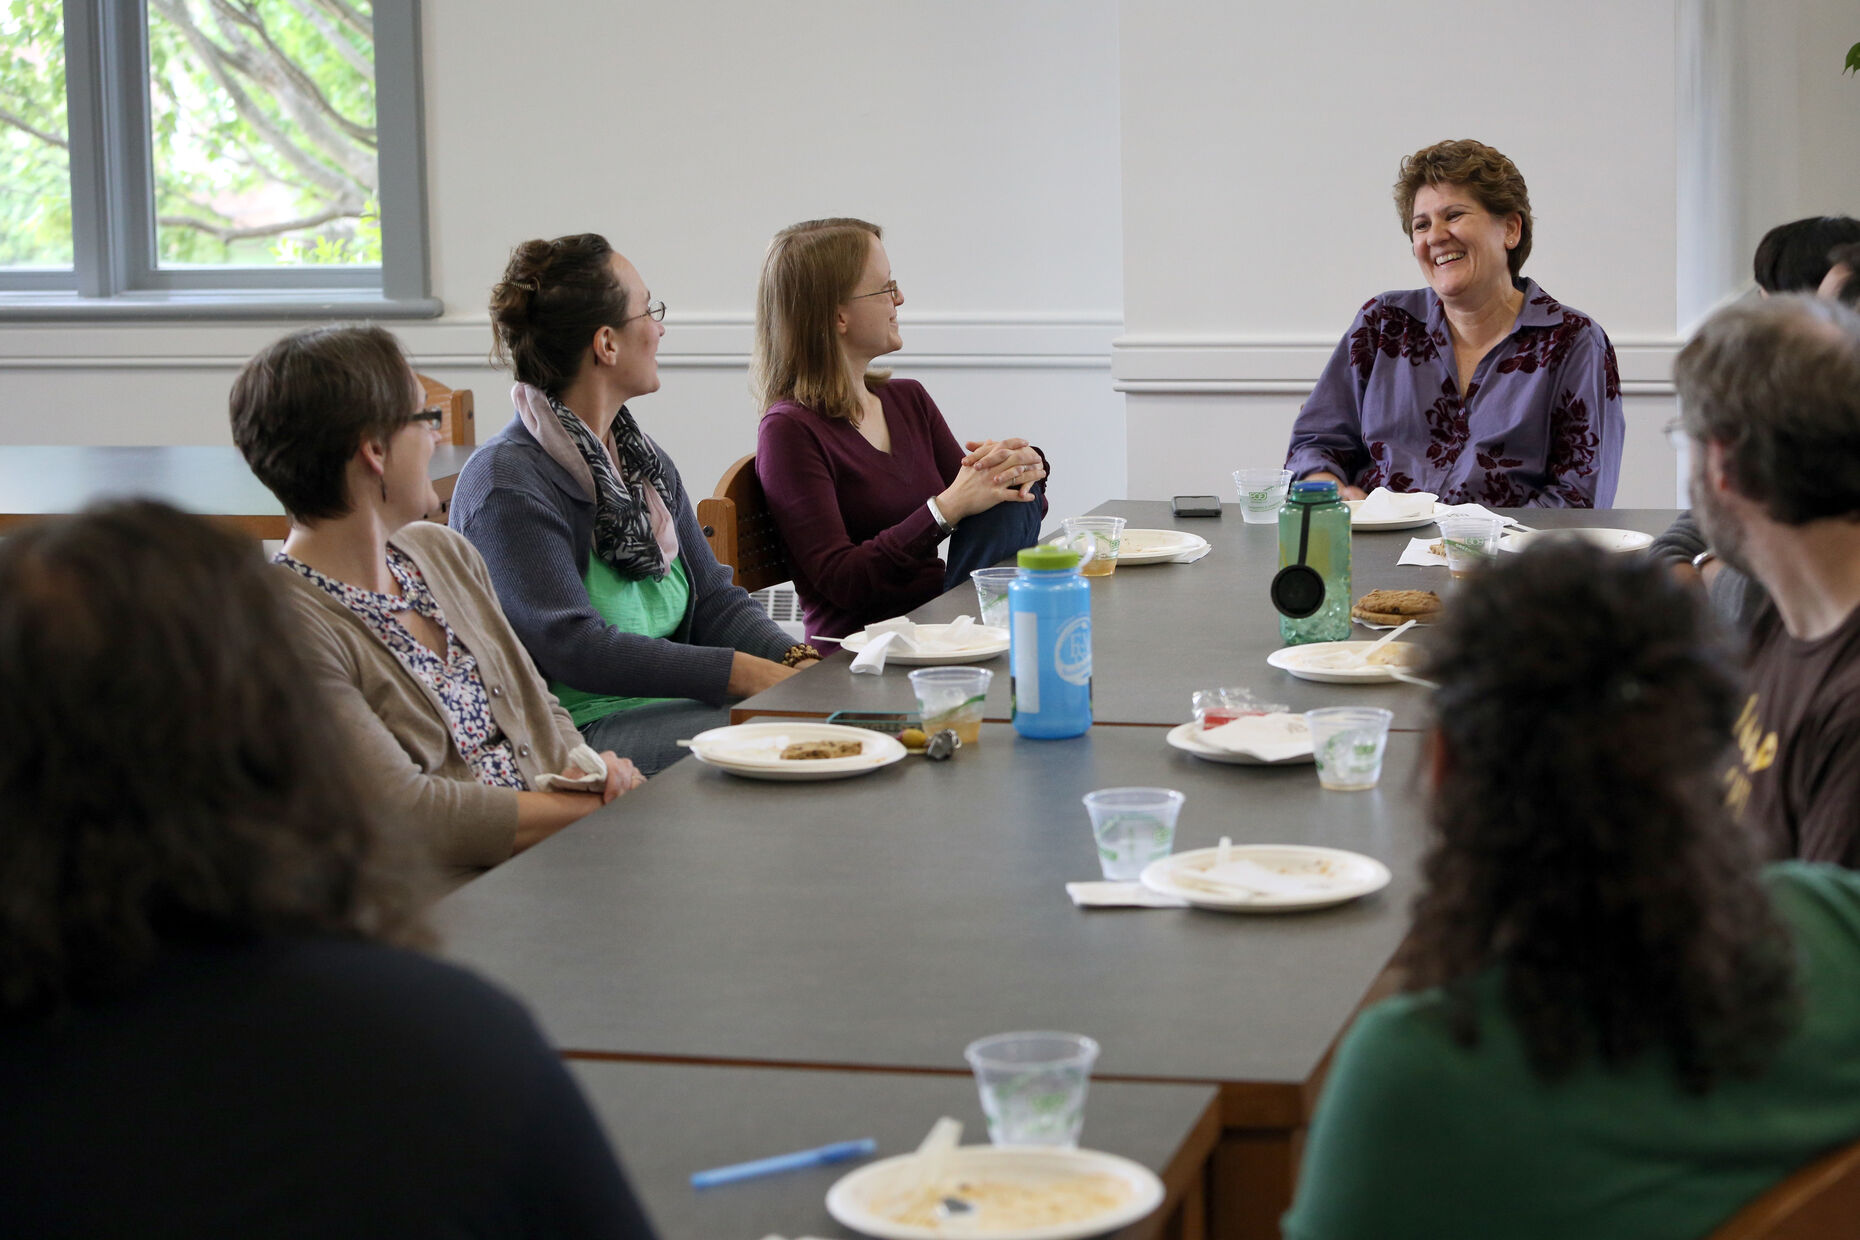 Faculty gather for a working lunch discussion.